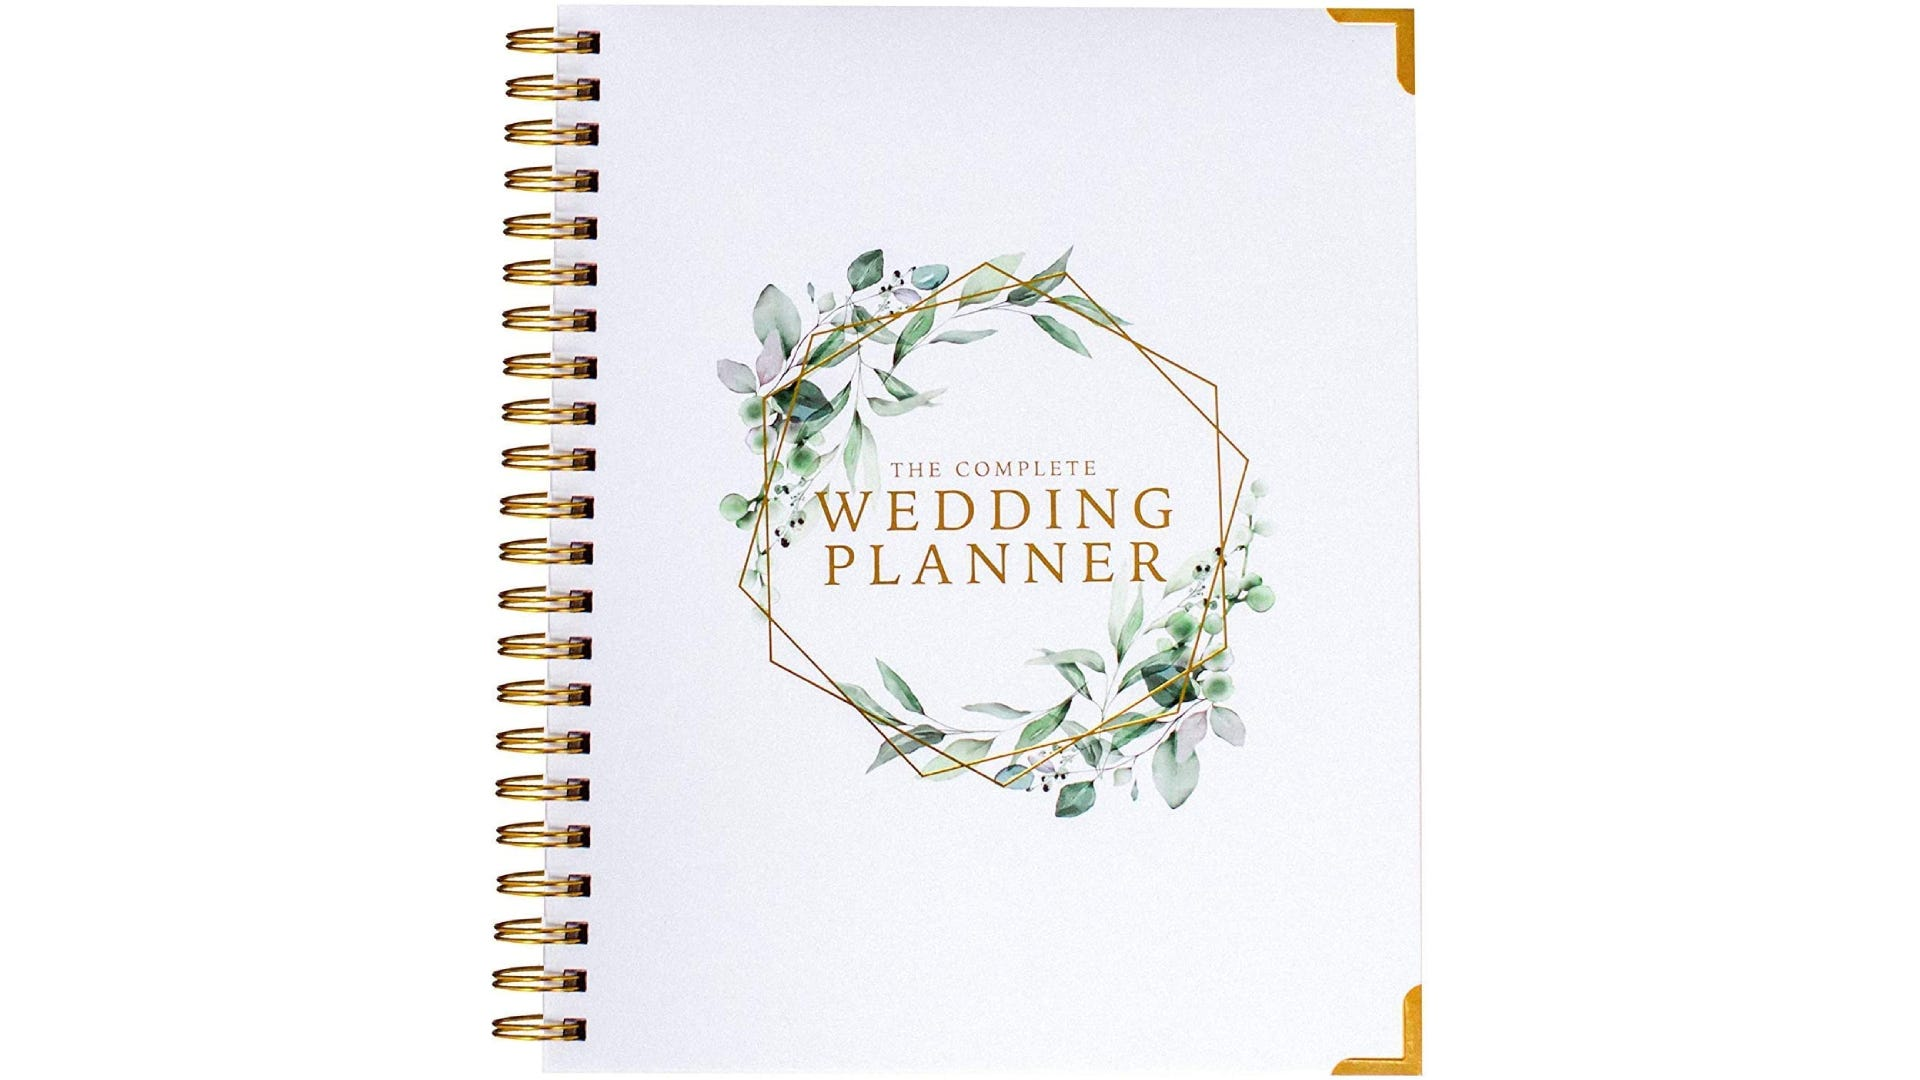 A spiral bound wedding planner book cover decorated with green and gold accents.